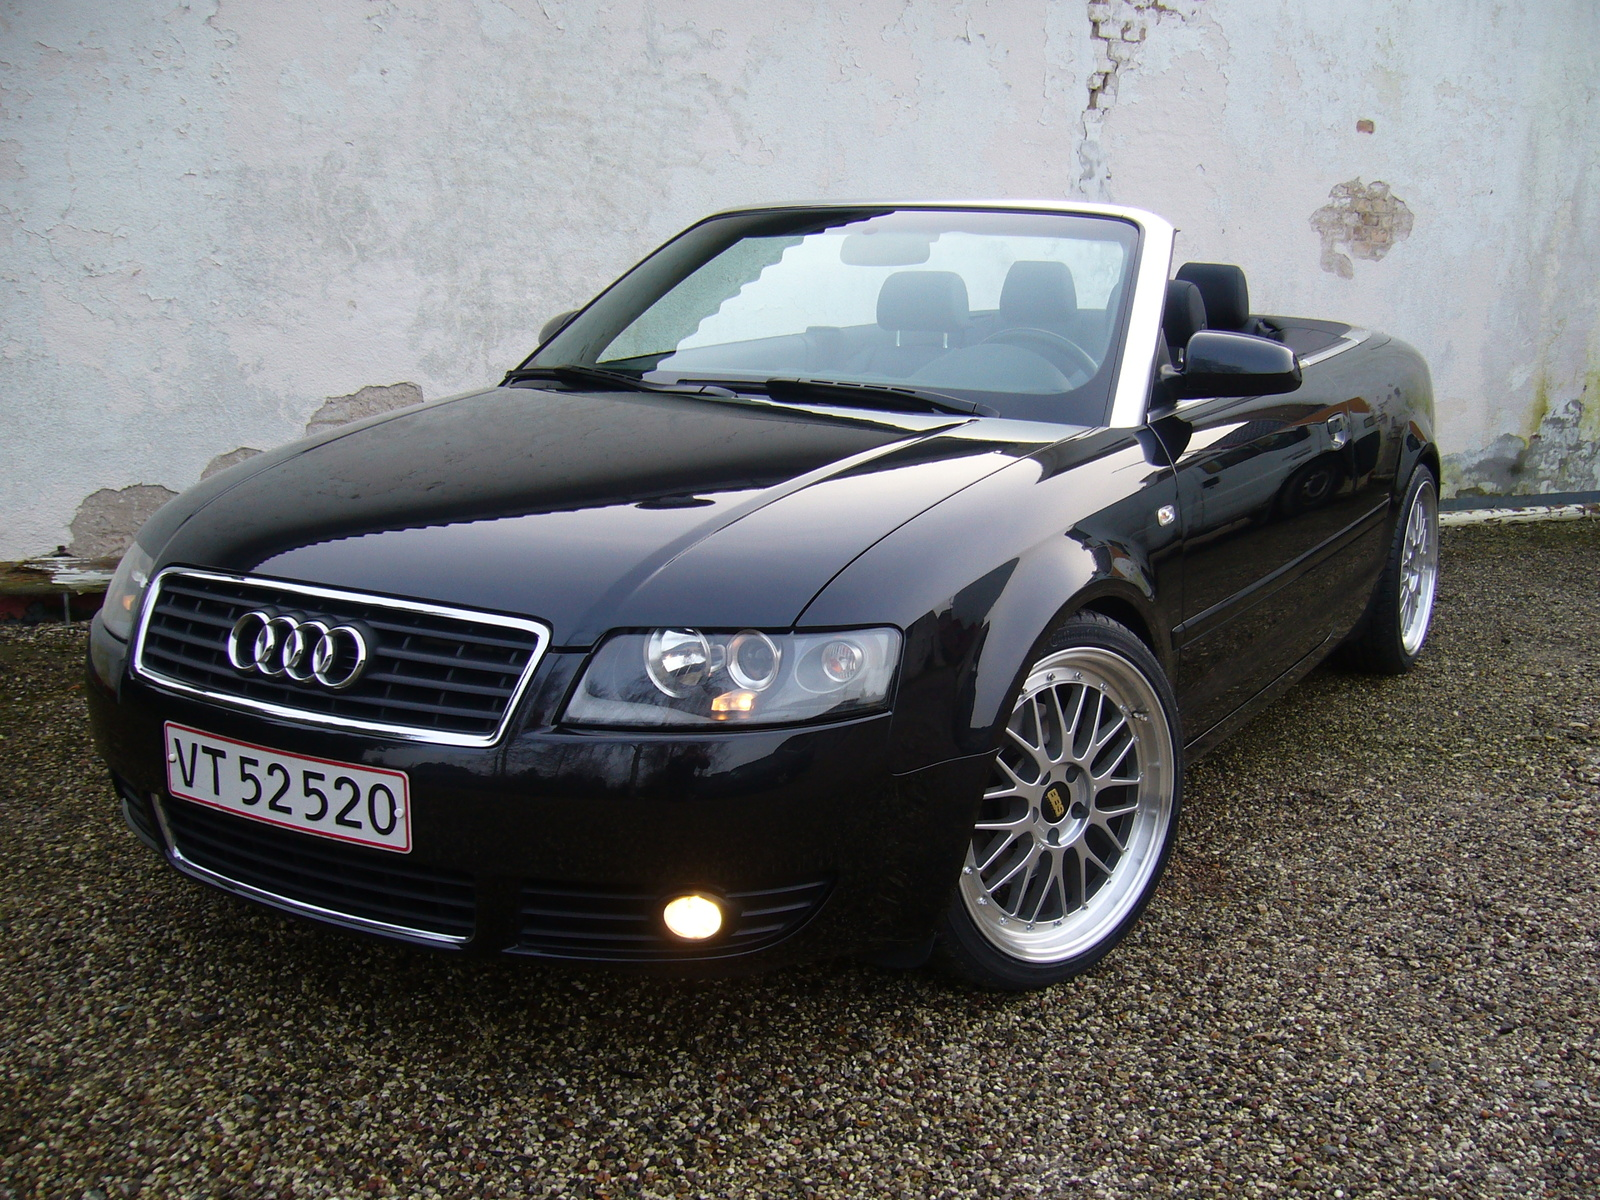 2004 Audi A4 - Overview - CarGurus